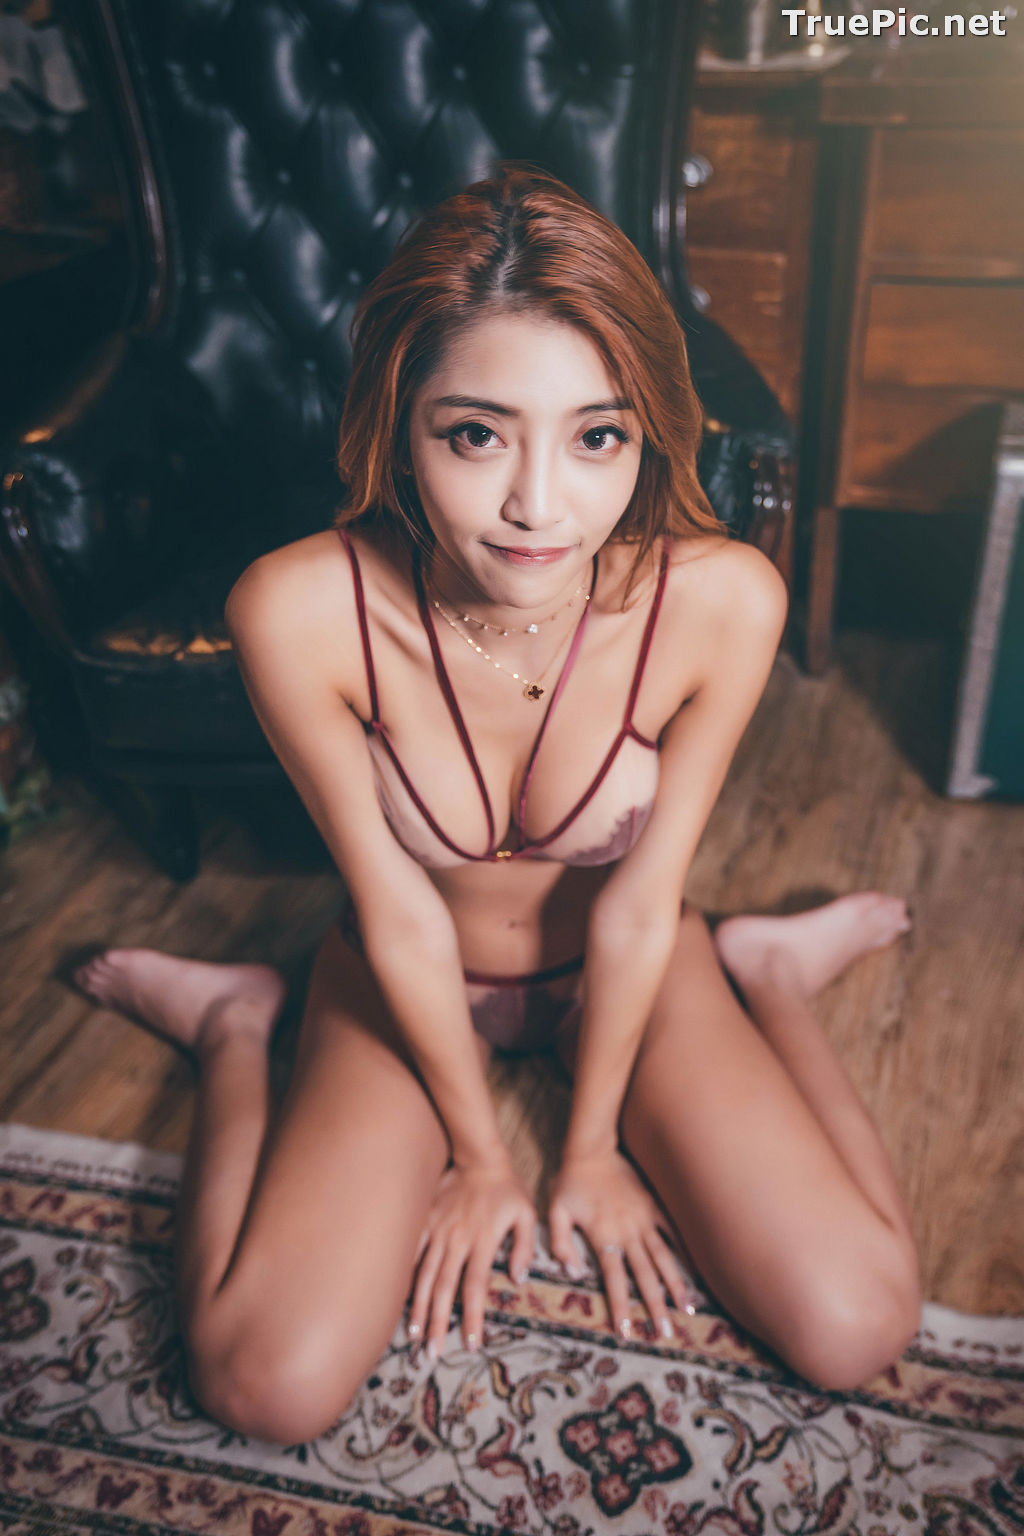 Image Taiwanese Model - 蘿拉Lola - Welcome To My Lingerie Show - TruePic.net - Picture-8